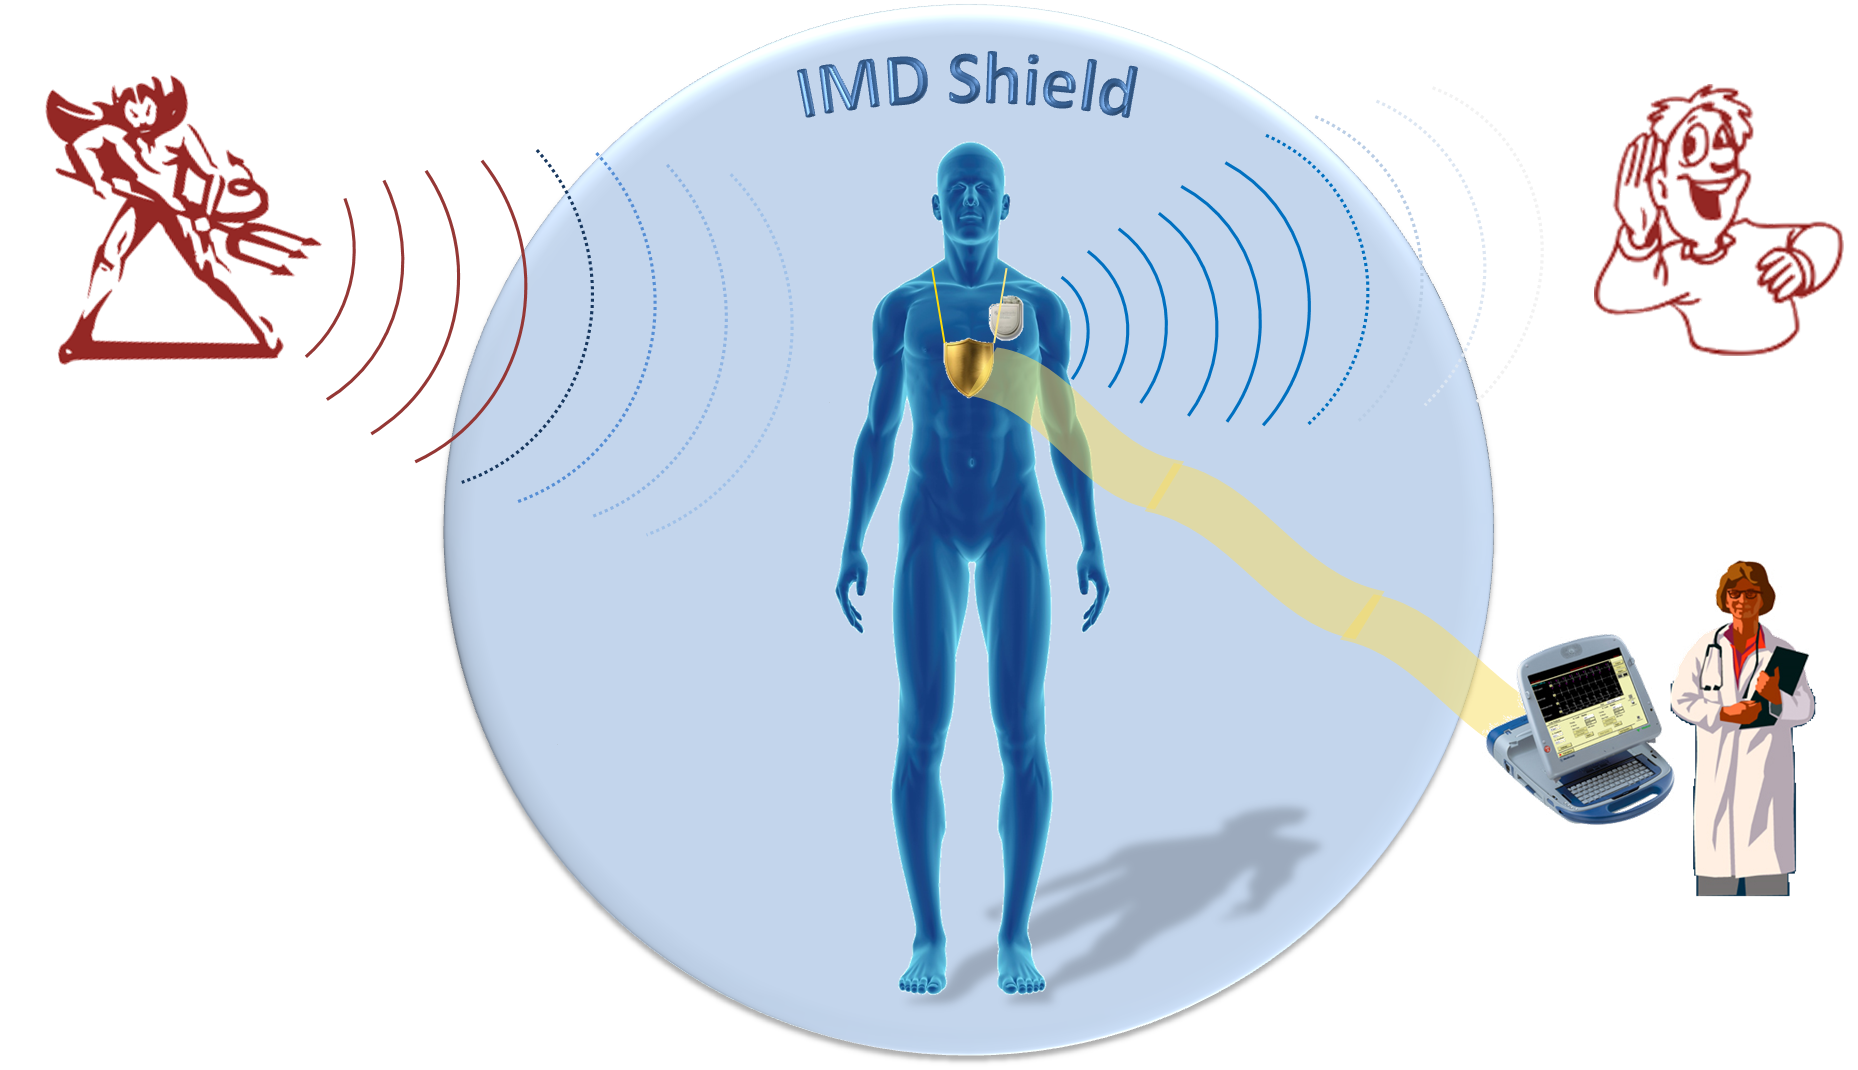 IMD Shield: Securing Implantable Medical Devices